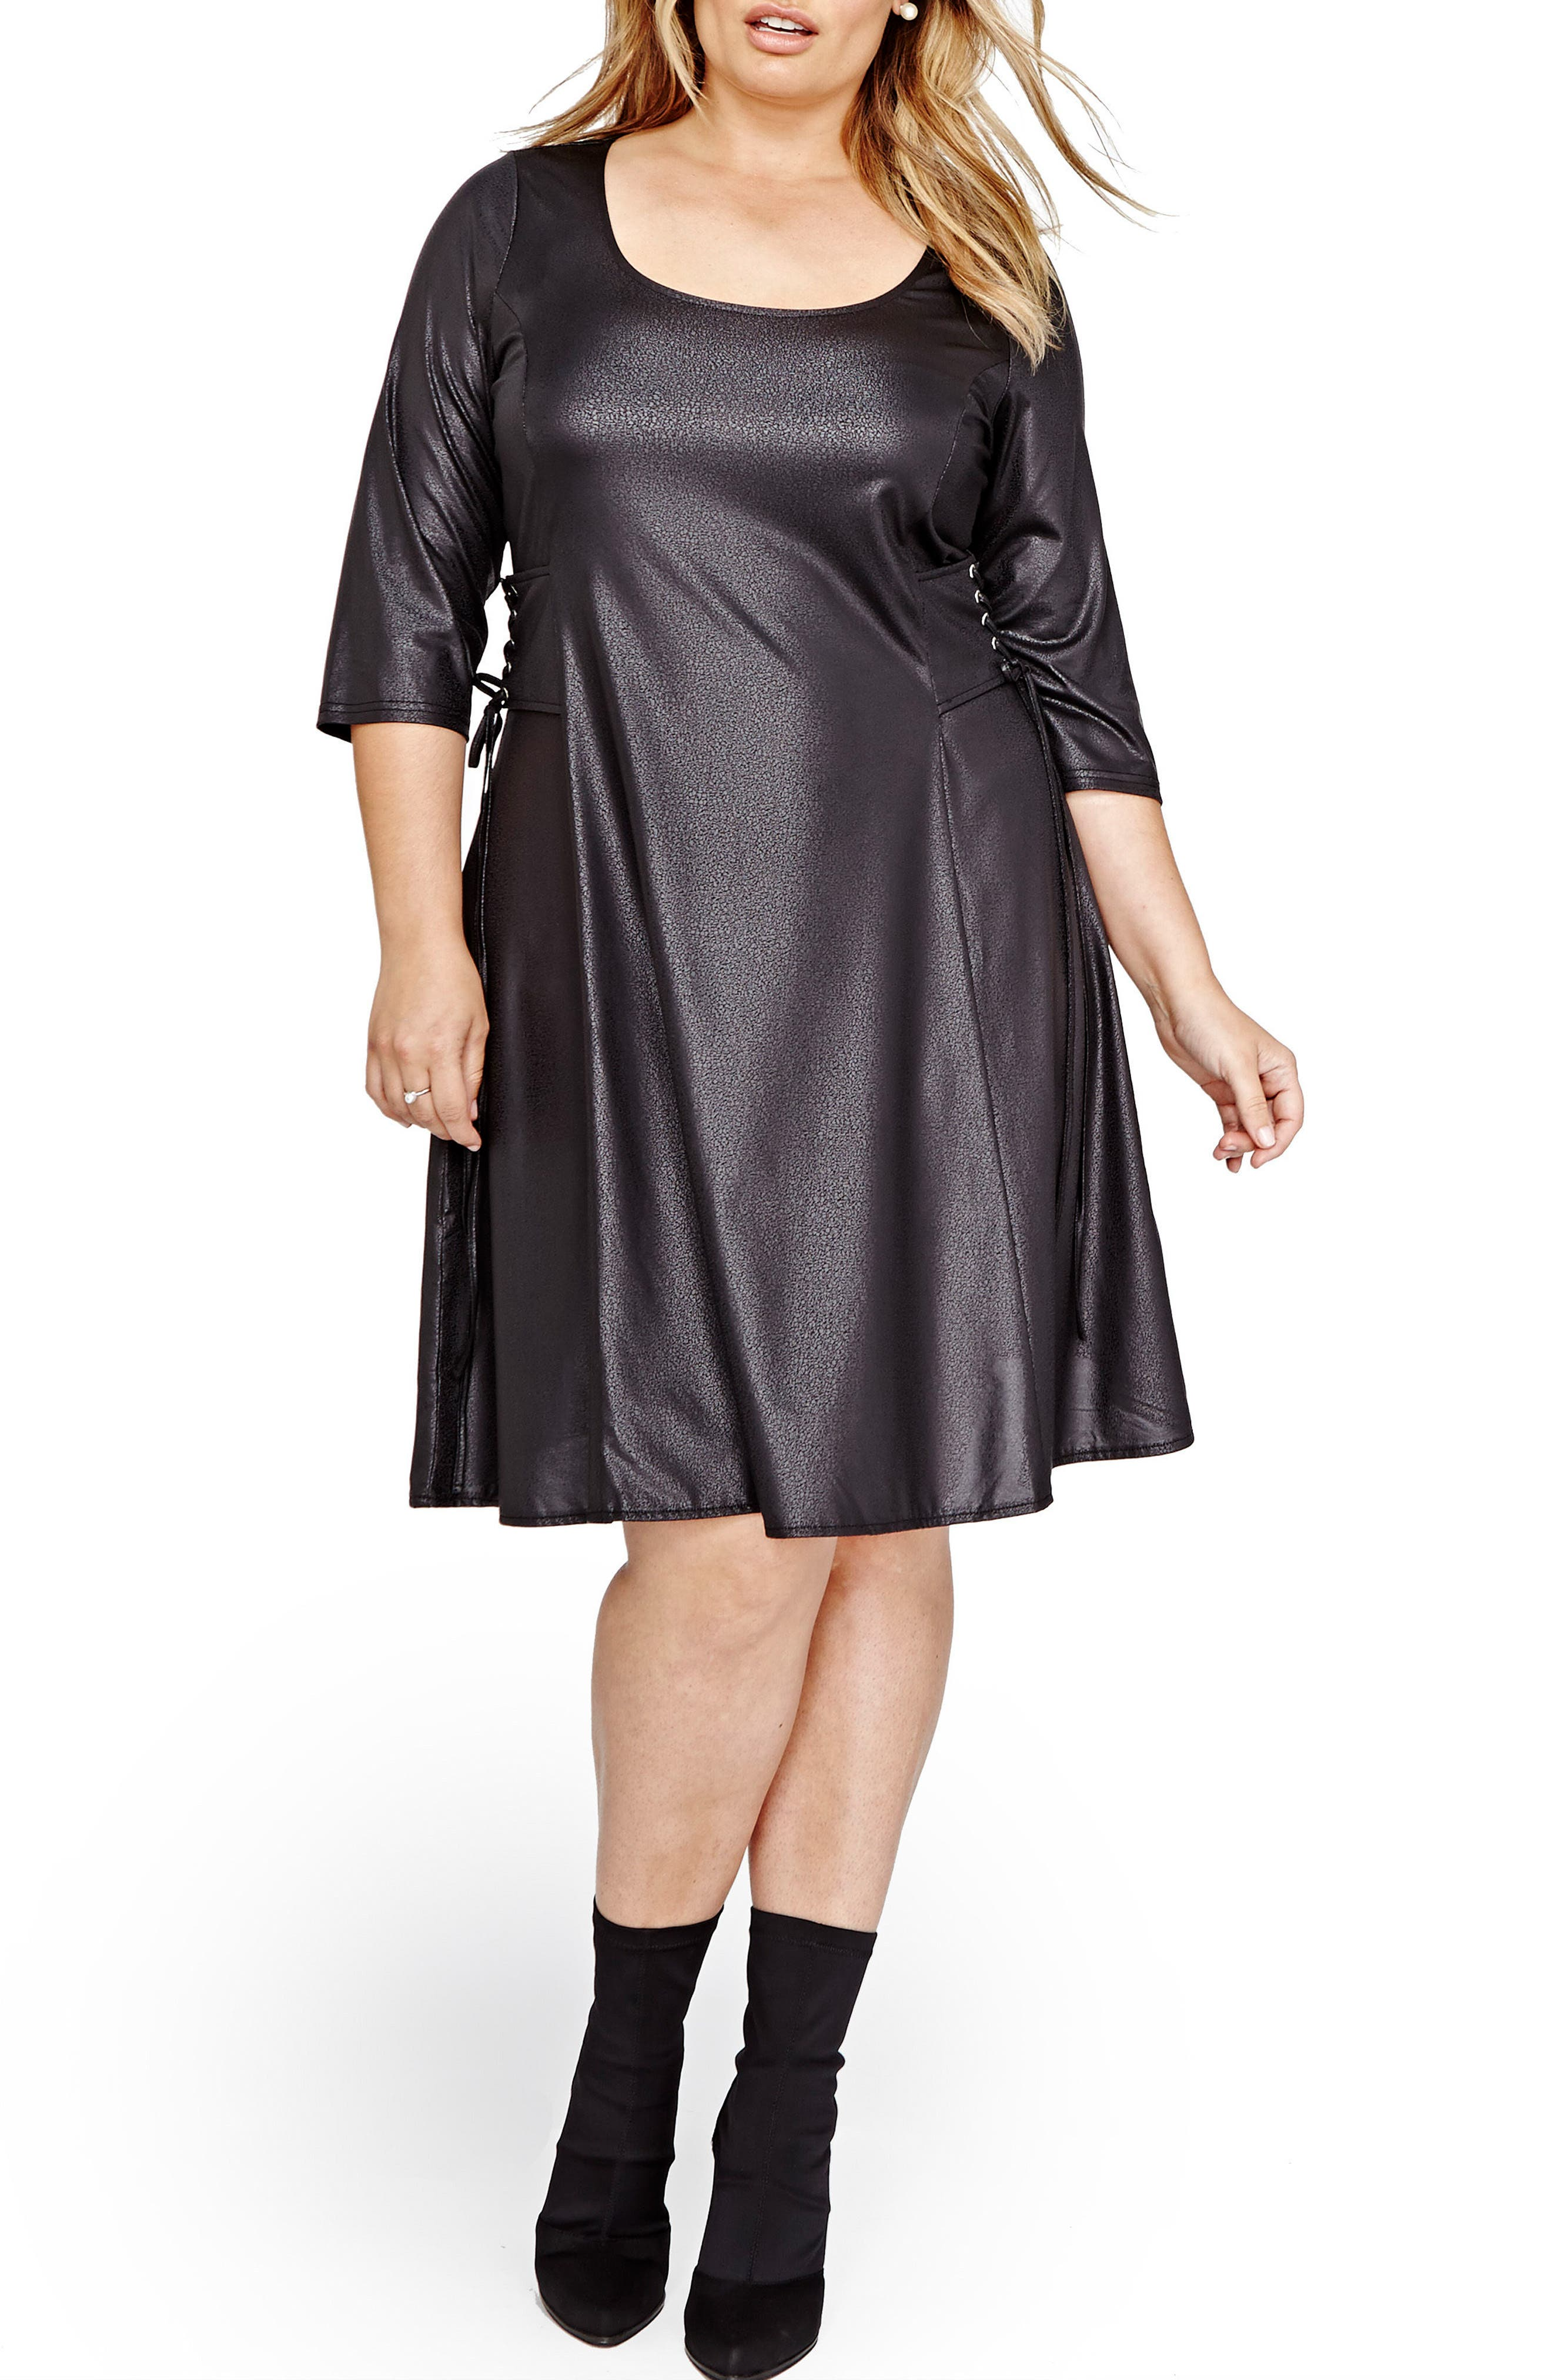 ADDITION ELLE LOVE AND LEGEND Lace-Up Swing Dress (Plus Size)